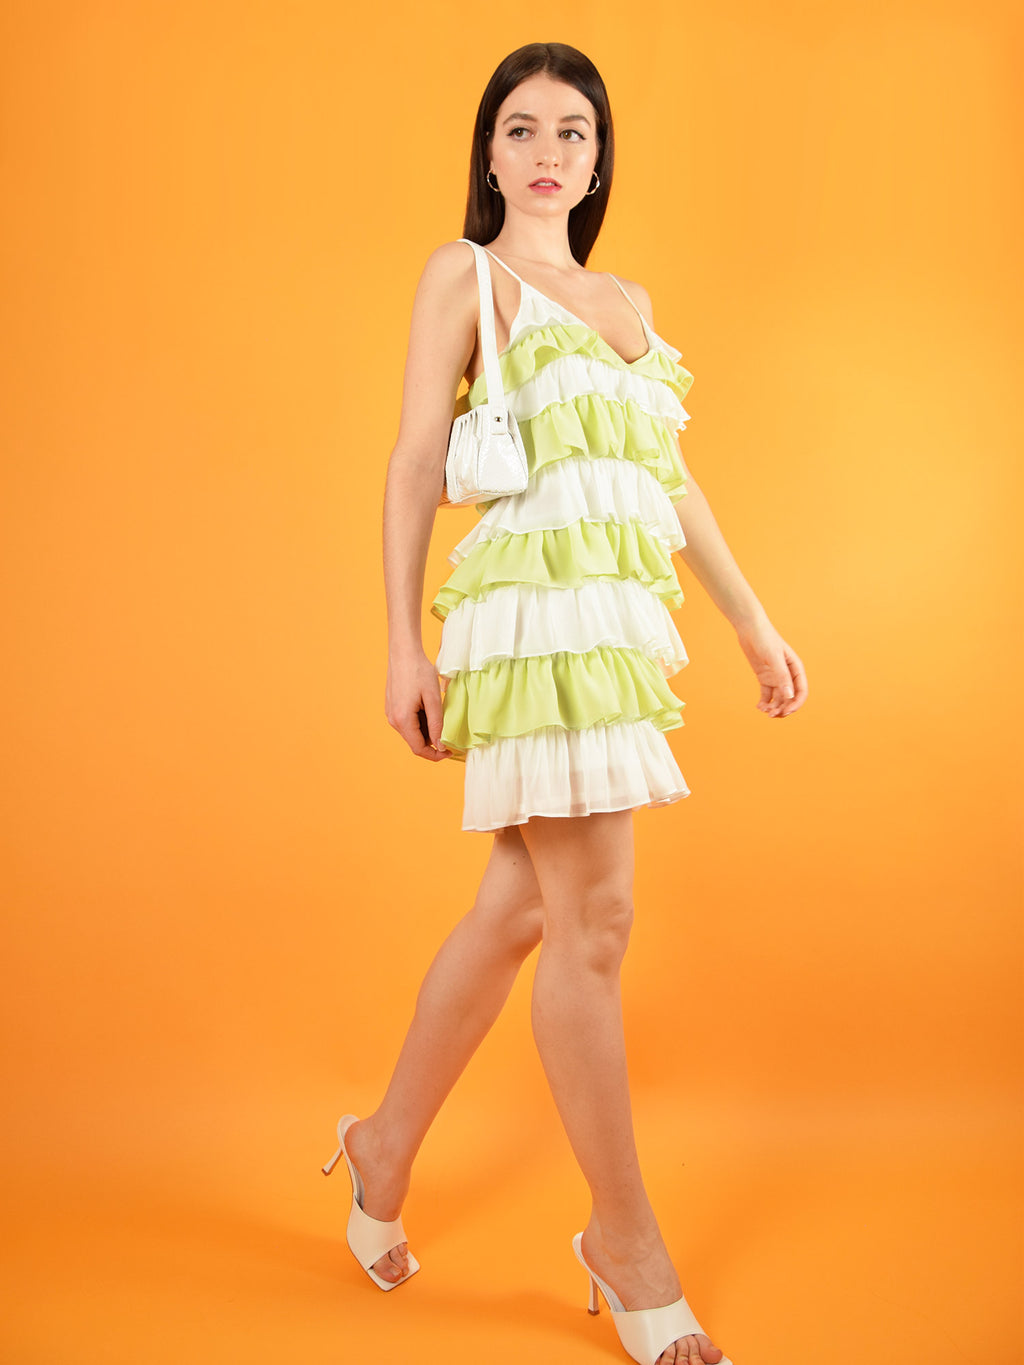 The summer affair mini dress by blonde gone rogue is a short dress with ruffle details all over it. It comes in white and yellow and features adjustable straps for a perfect fit. It's great for parties, cocktails and brunches.